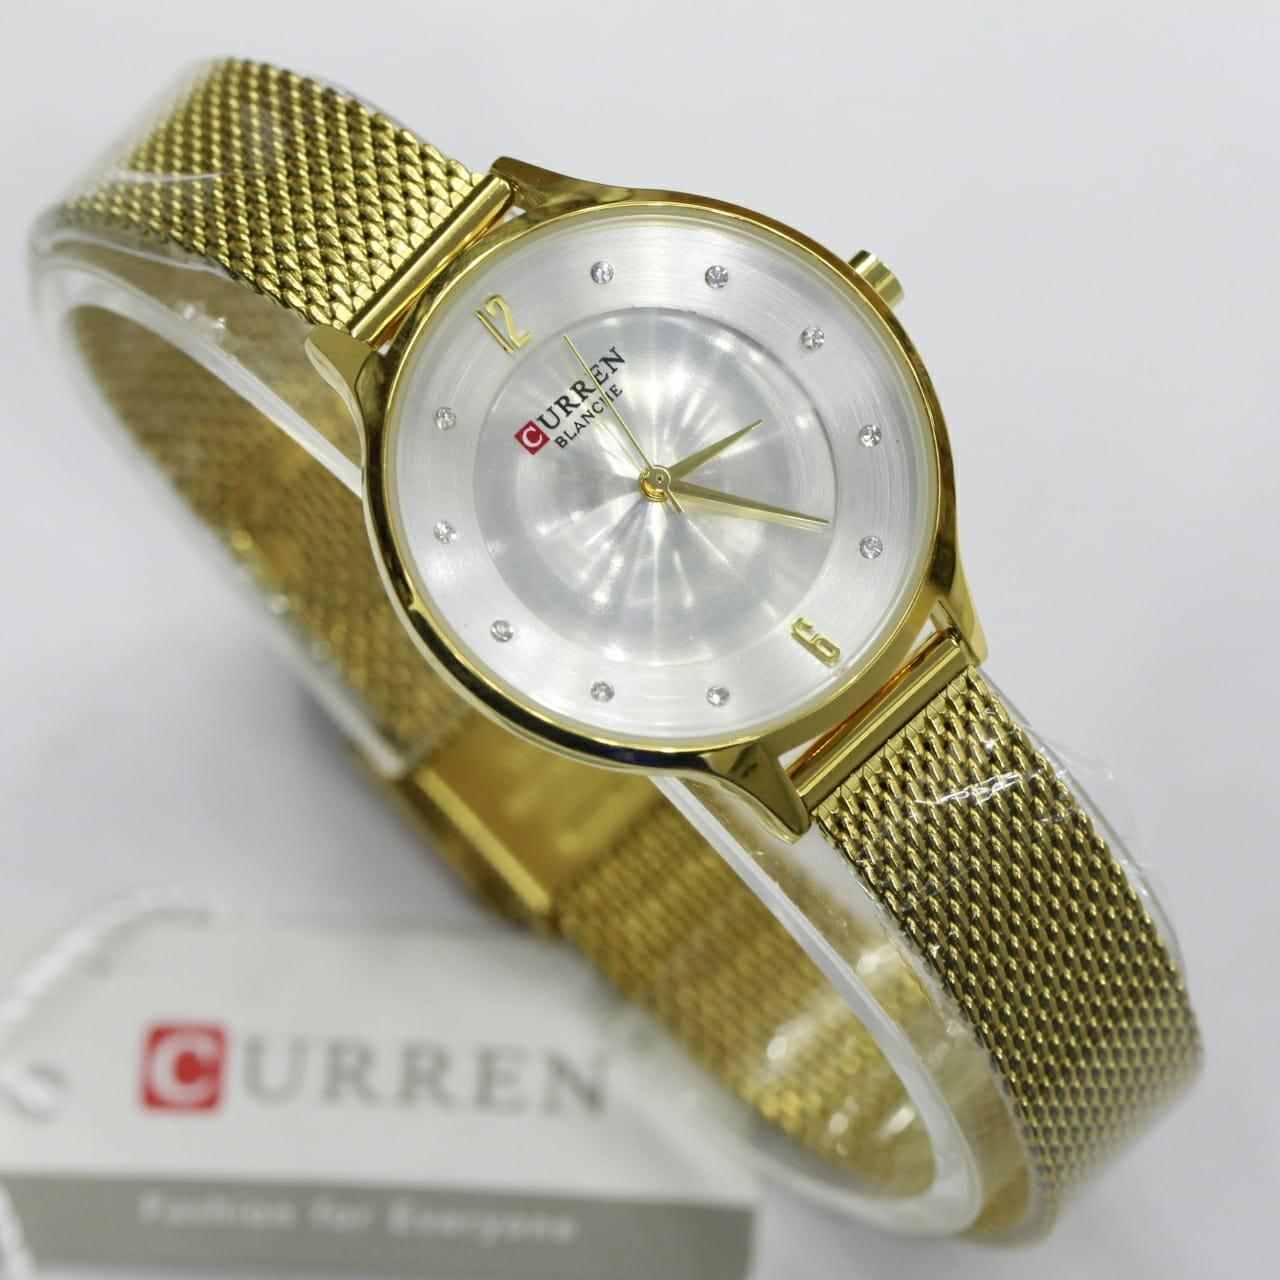 Buy Sell Cheapest Curren Jam Tangan Best Quality Product Deals 8139 Casual Style Watch Wanita 9036 Mesh Original